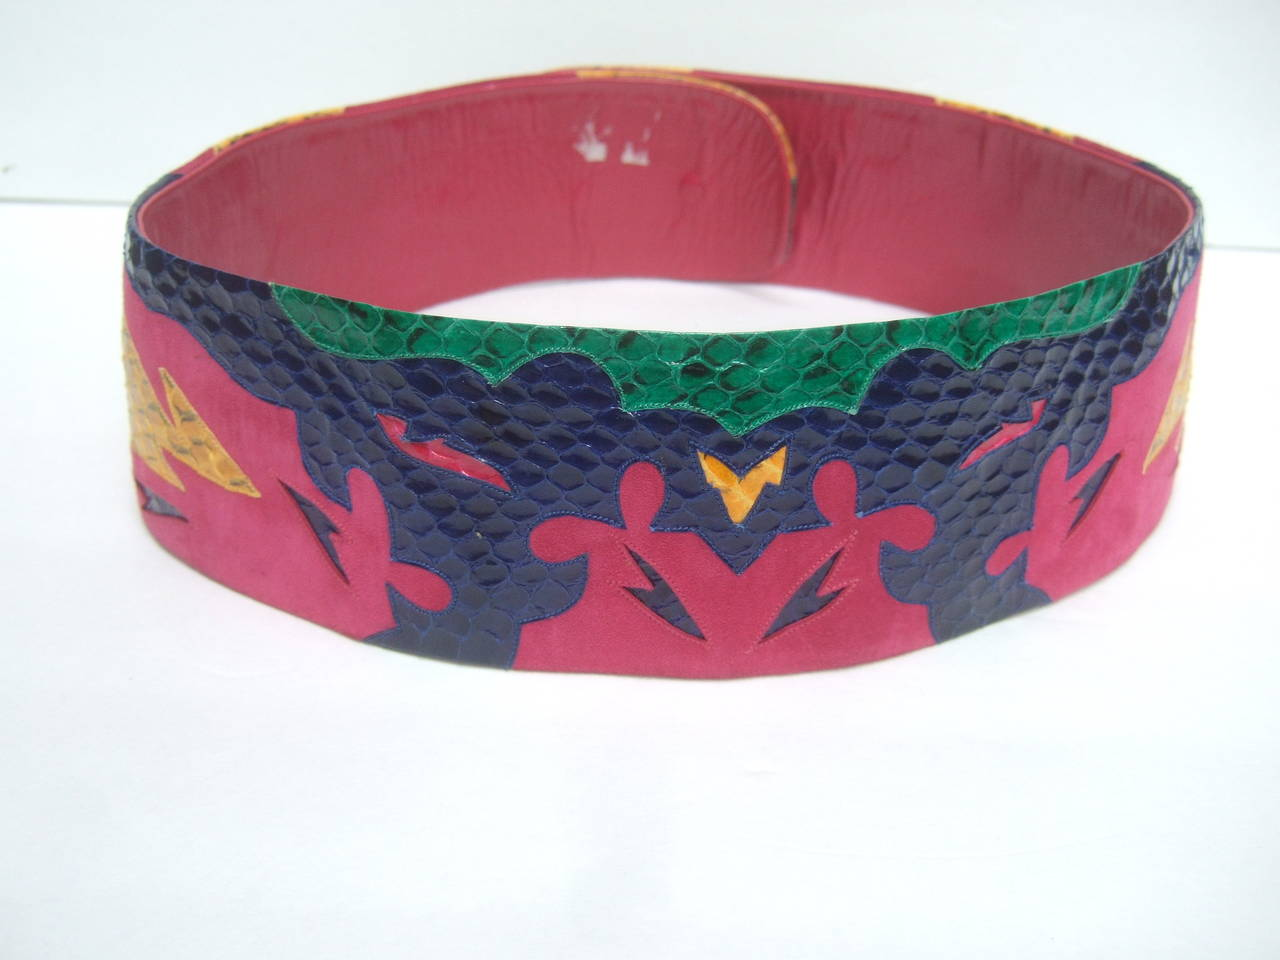 Exotic Italian Wide Snakeskin Fuchsia Suede Belt c 1980s For Sale 3